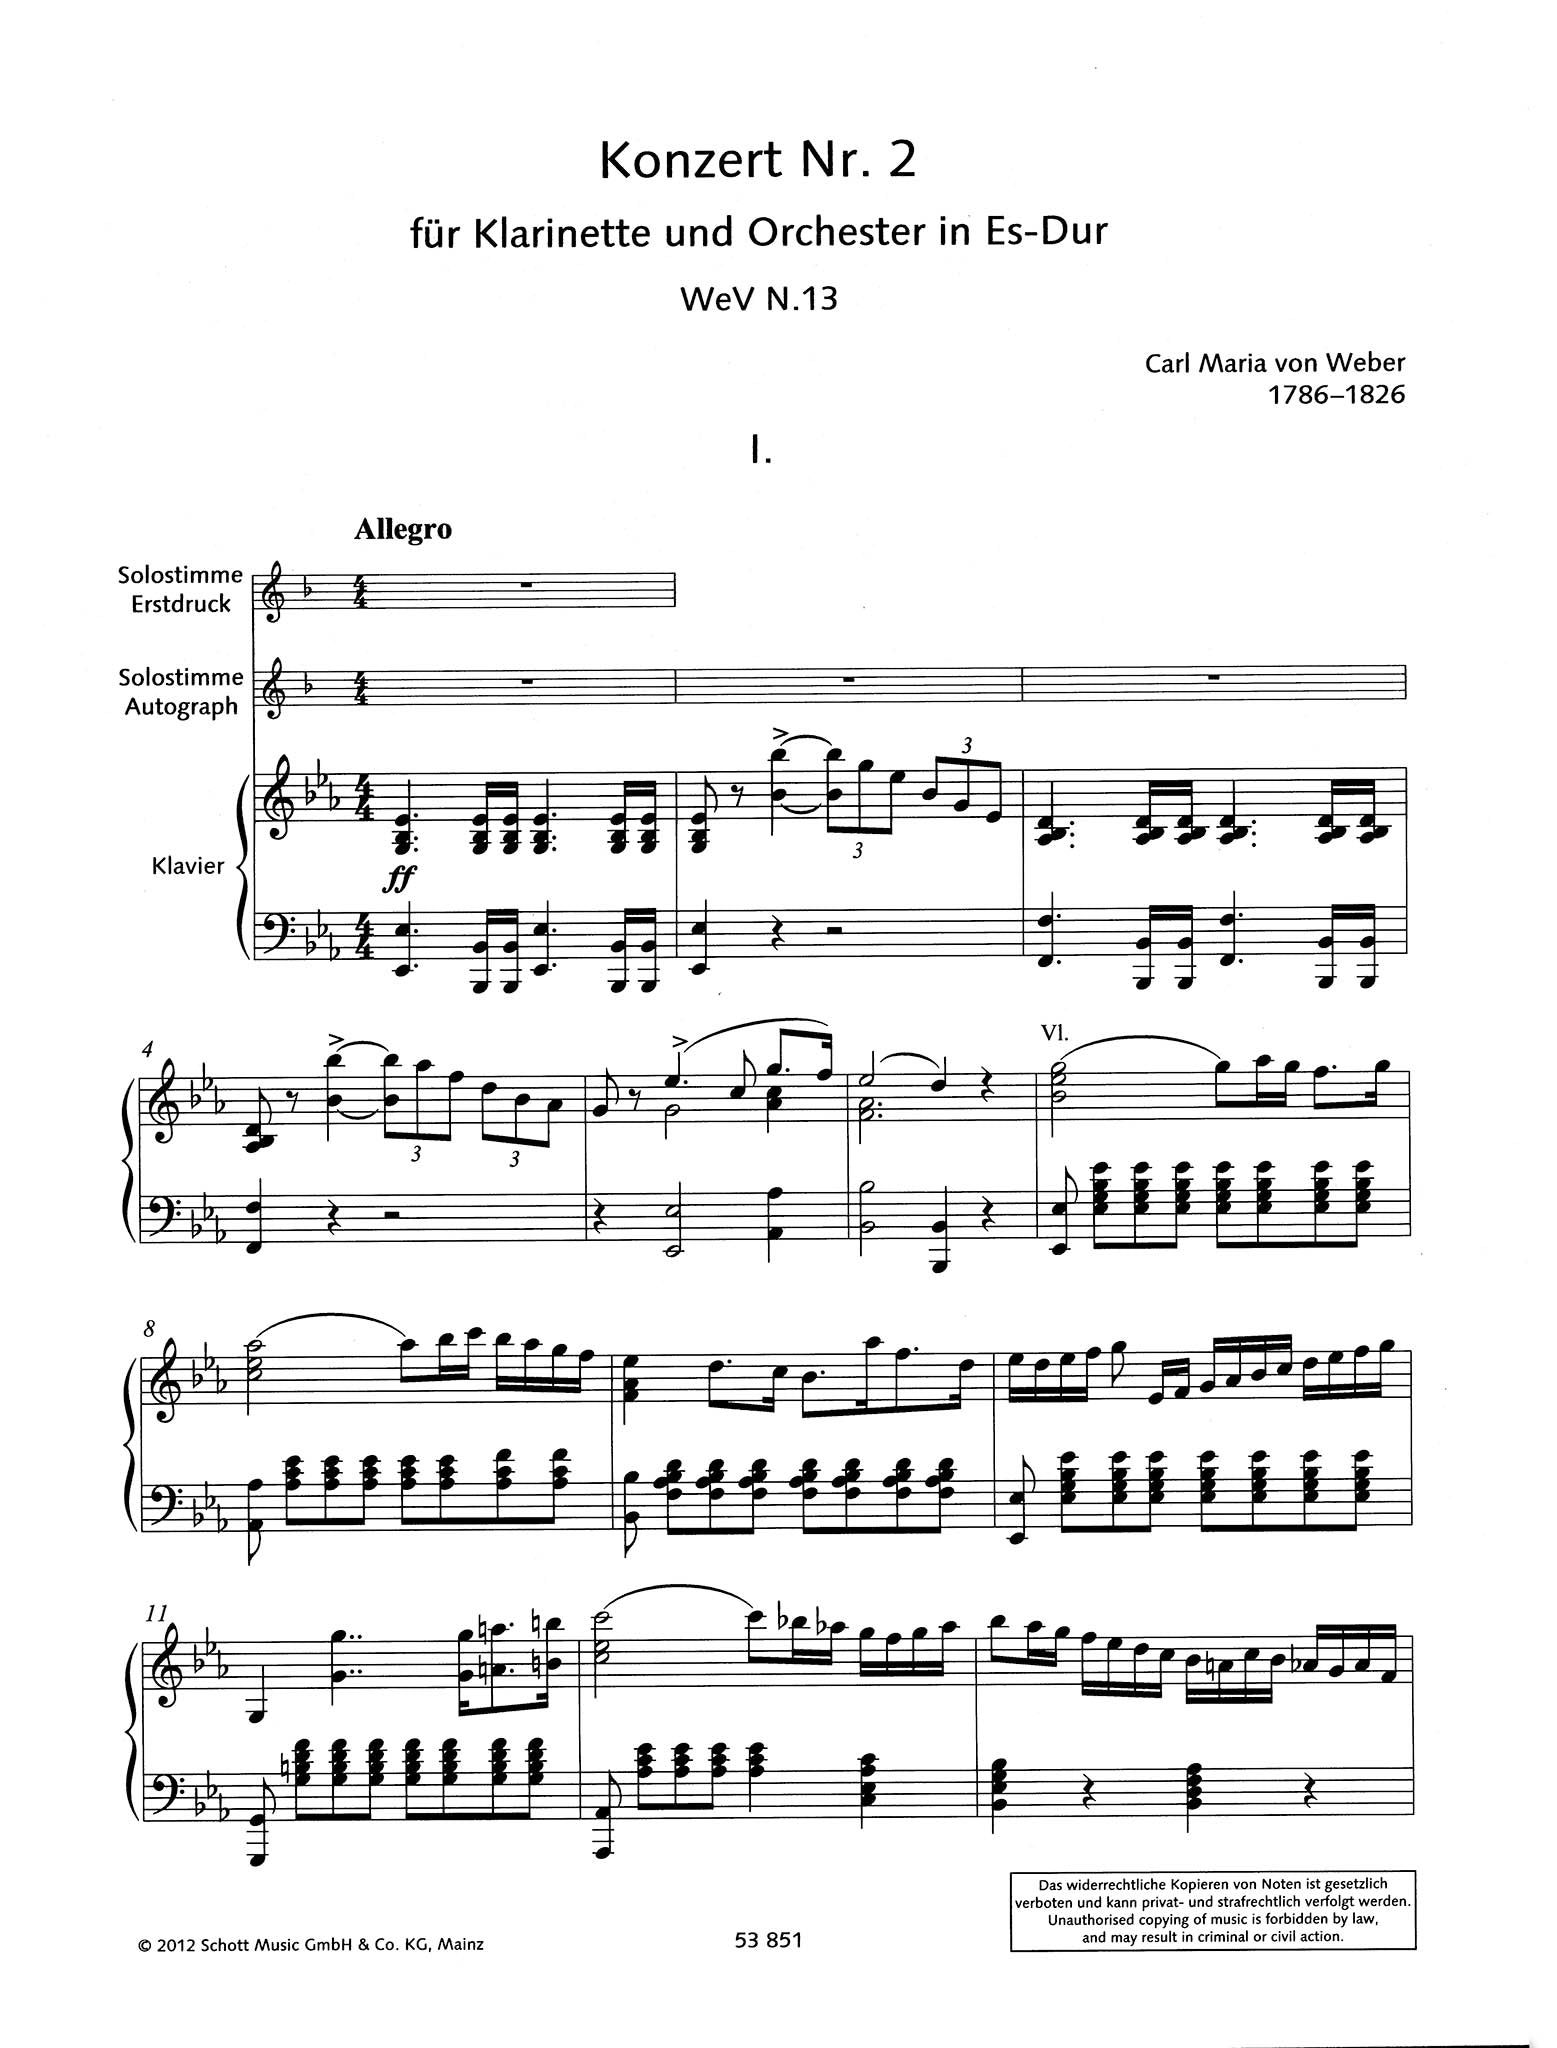 Clarinet Concerto No. 2 in E-flat Major, Op. 74 - Movement 1